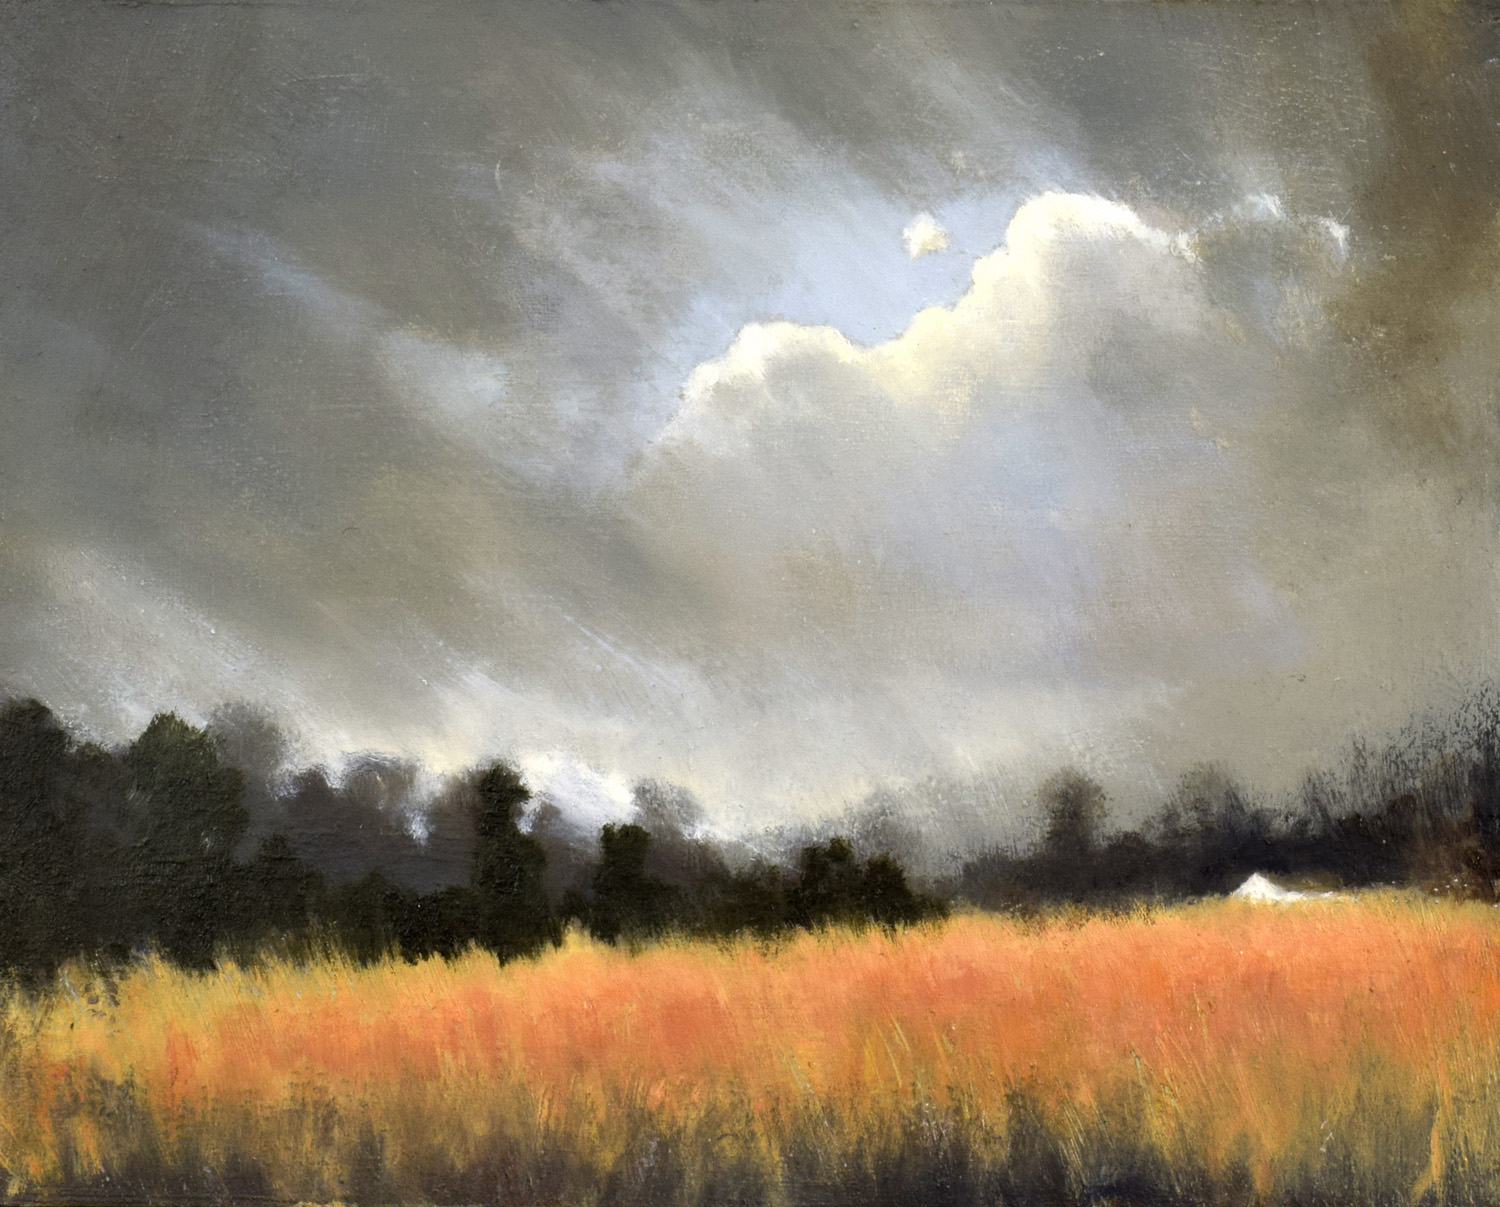 The Golden Field II, John O'Grady | An autumnal oil on canvas Irish landscape with a cloudy sky and a golden field